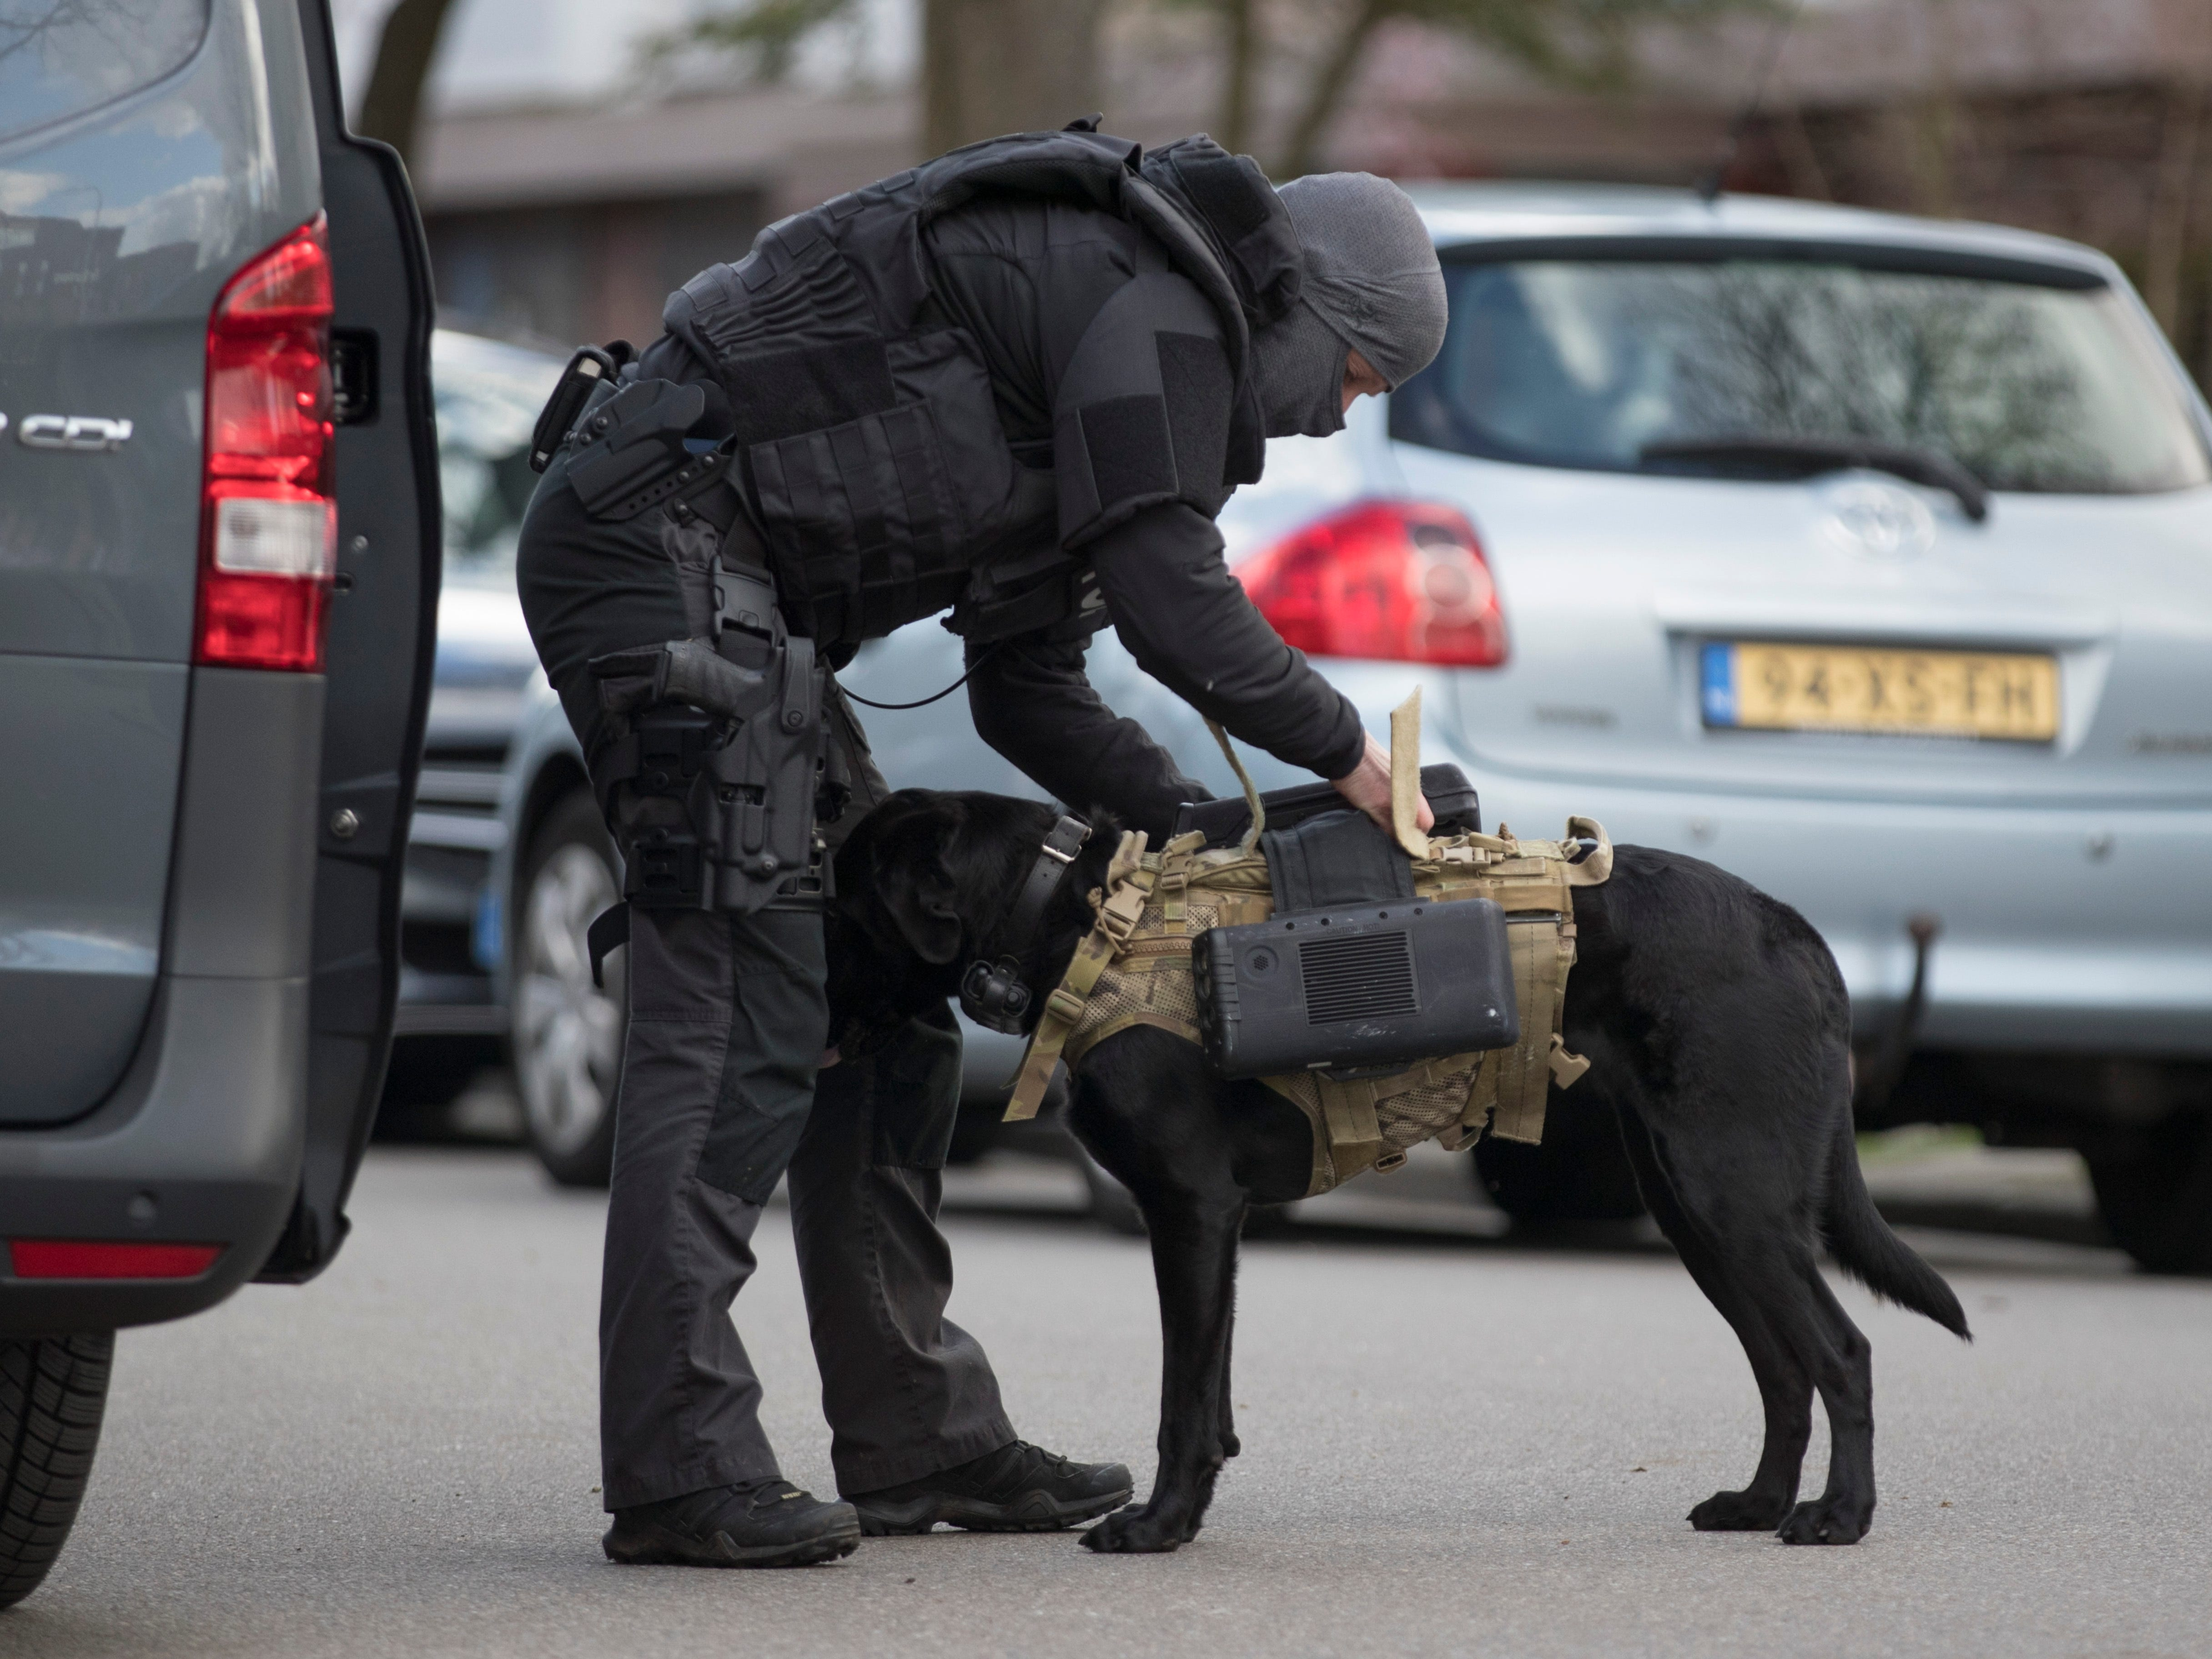 Dutch counter terrorism police install a camera on a sniffer dog as they prepare to enter a house after a shooting incident in Utrecht, Netherlands, March 18, 2019.